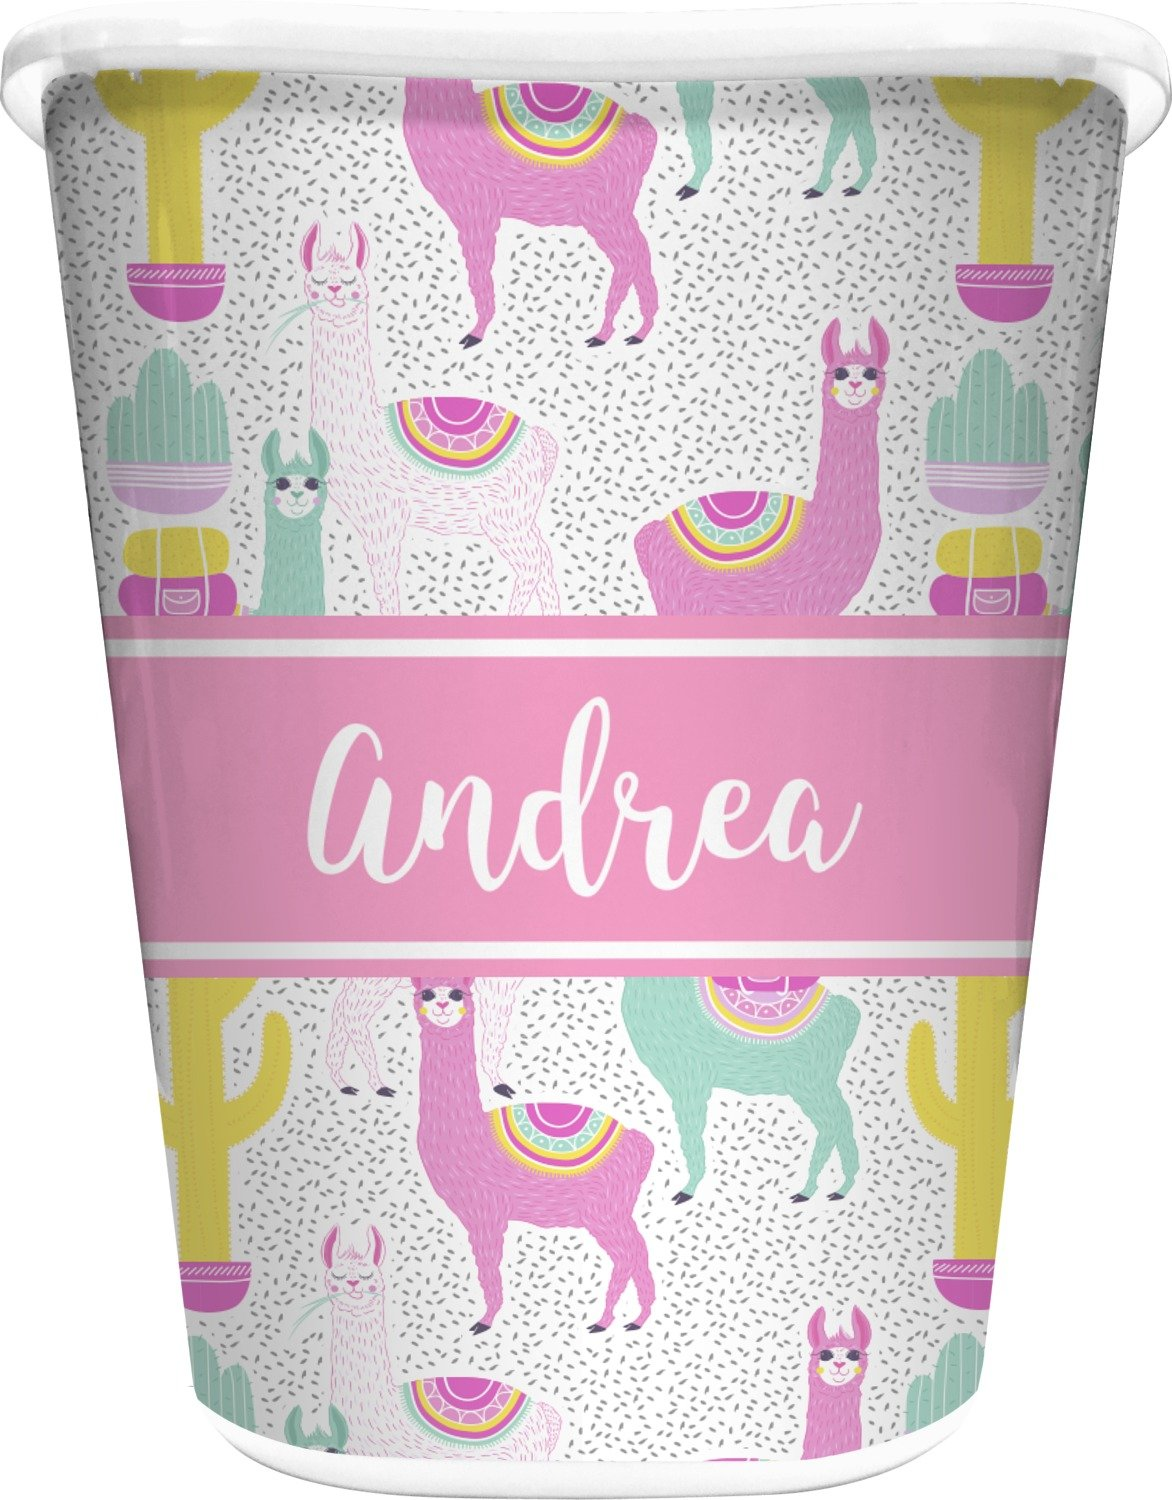 RNK Shops Llamas Waste Basket - Double Sided (White) (Personalized)